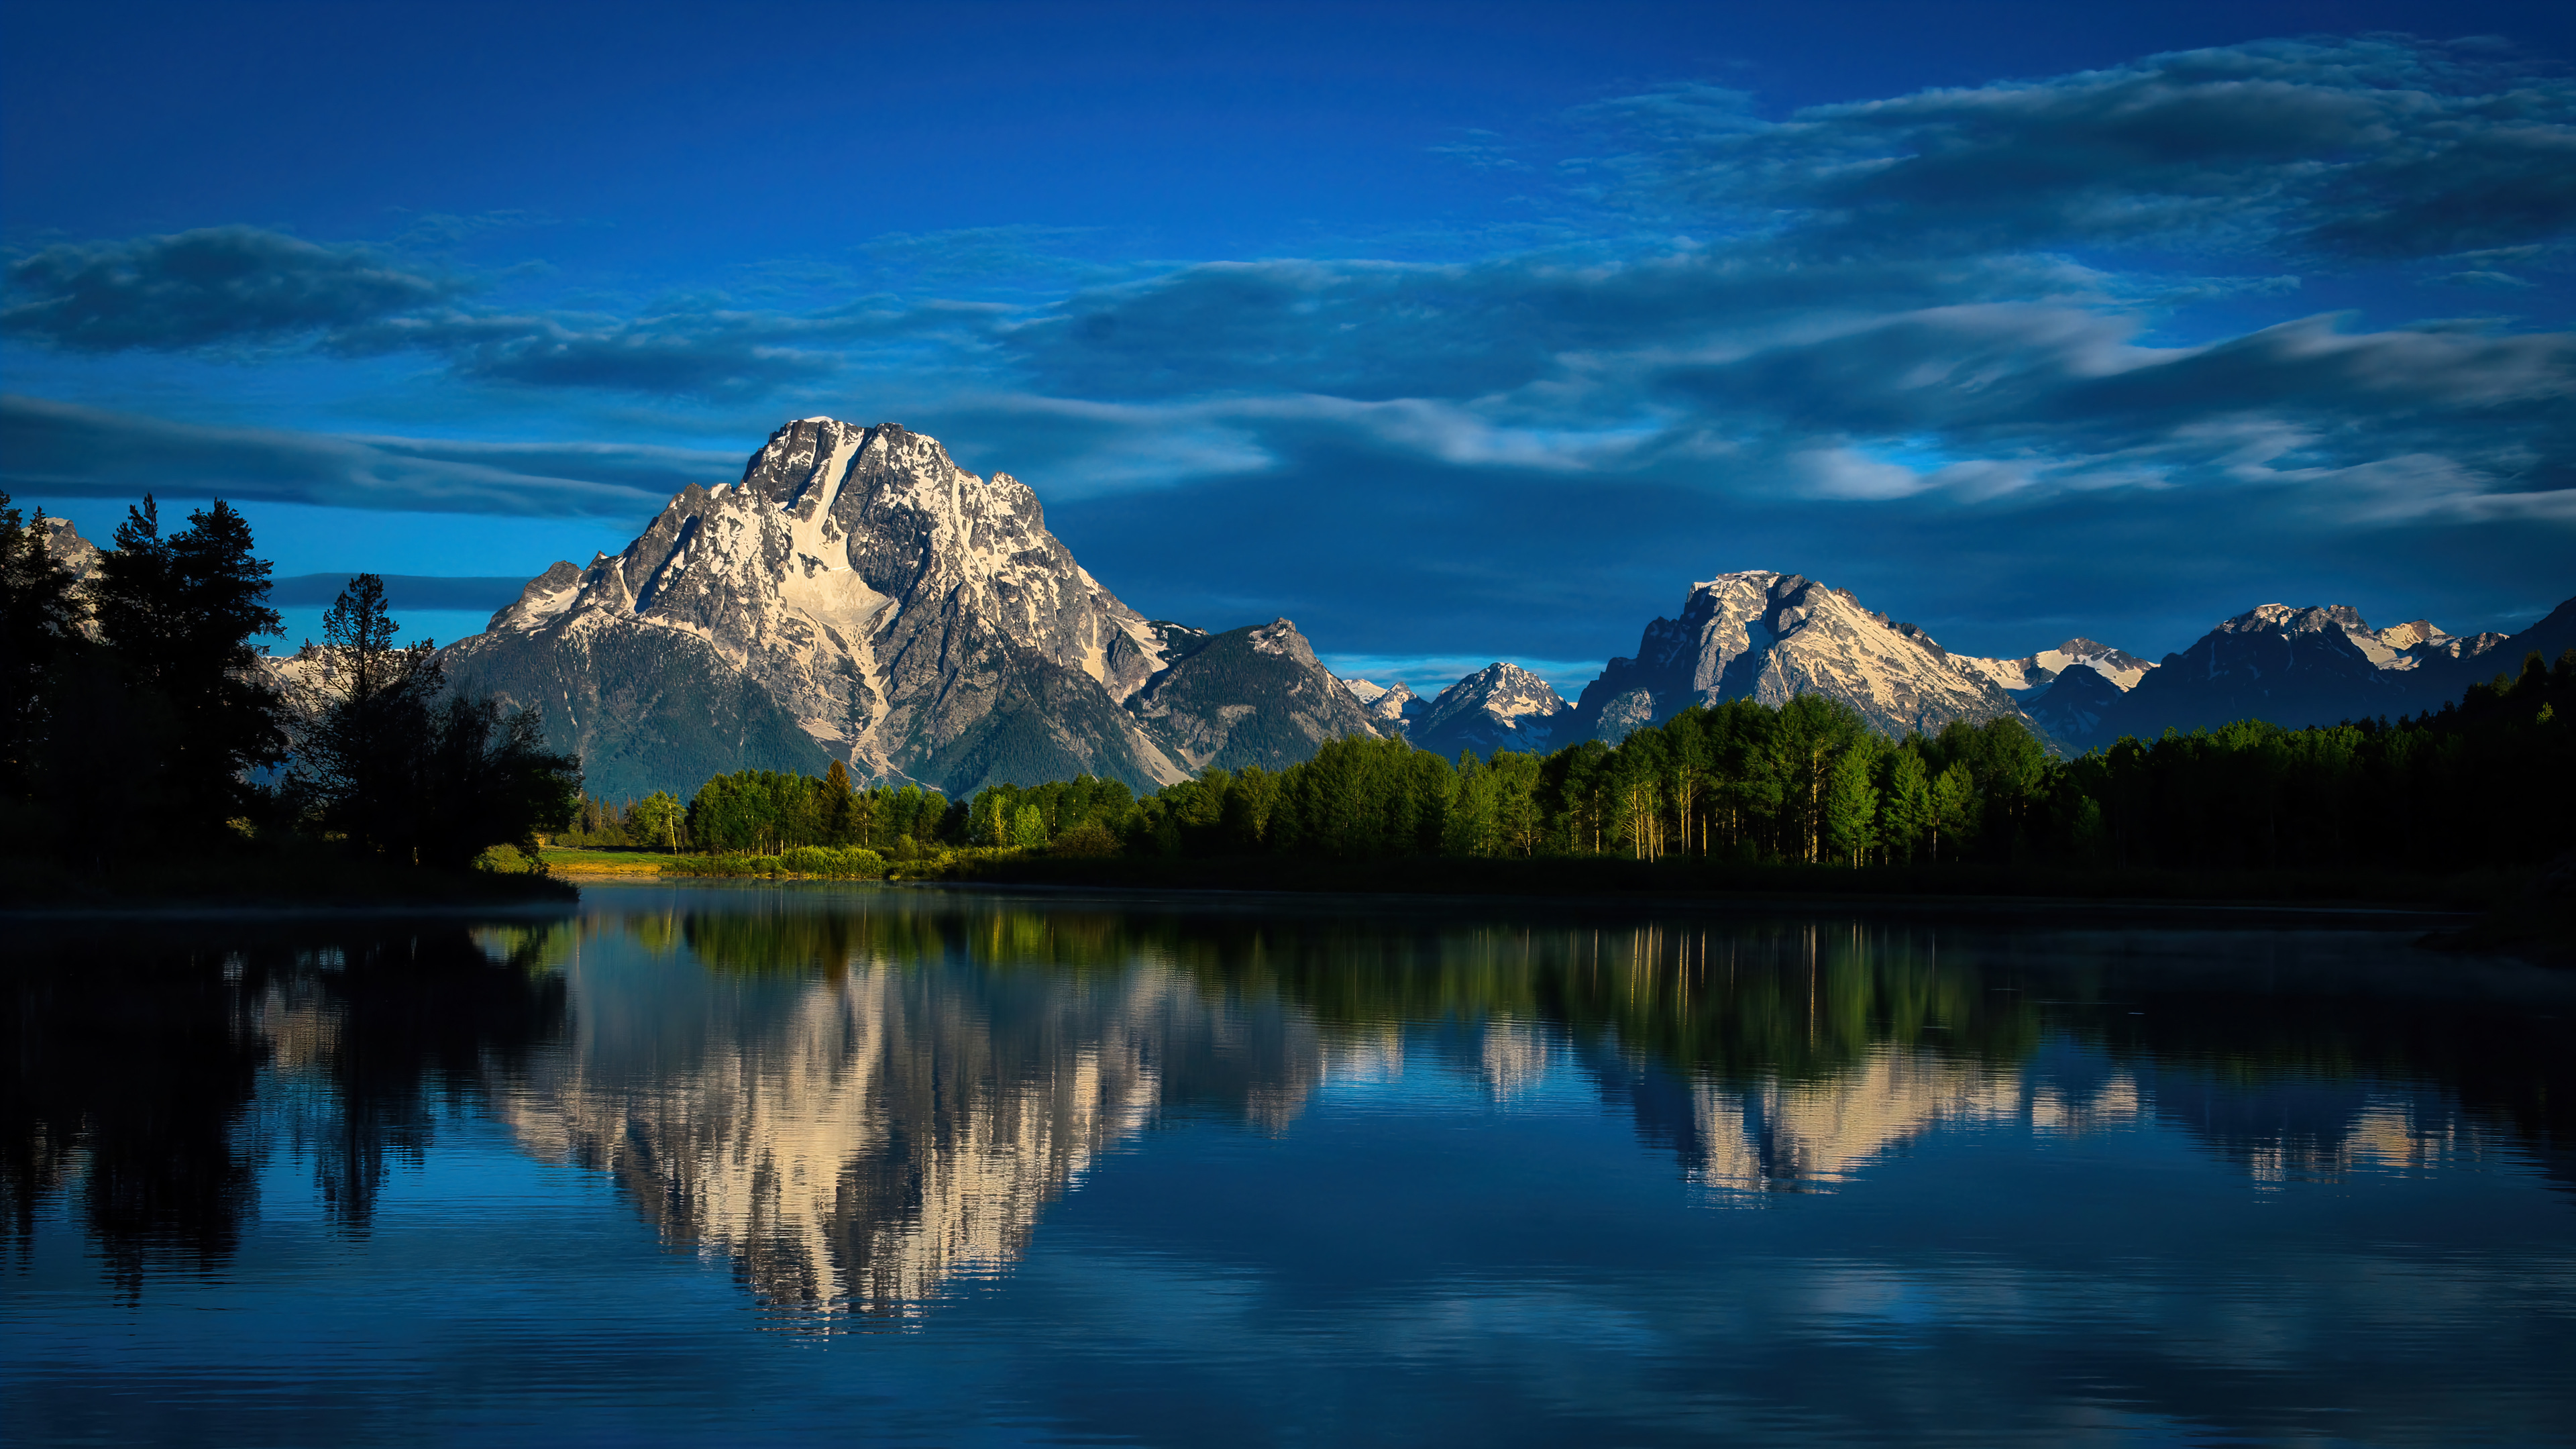 Wallpaper Mountains reflected in lake with blue sky